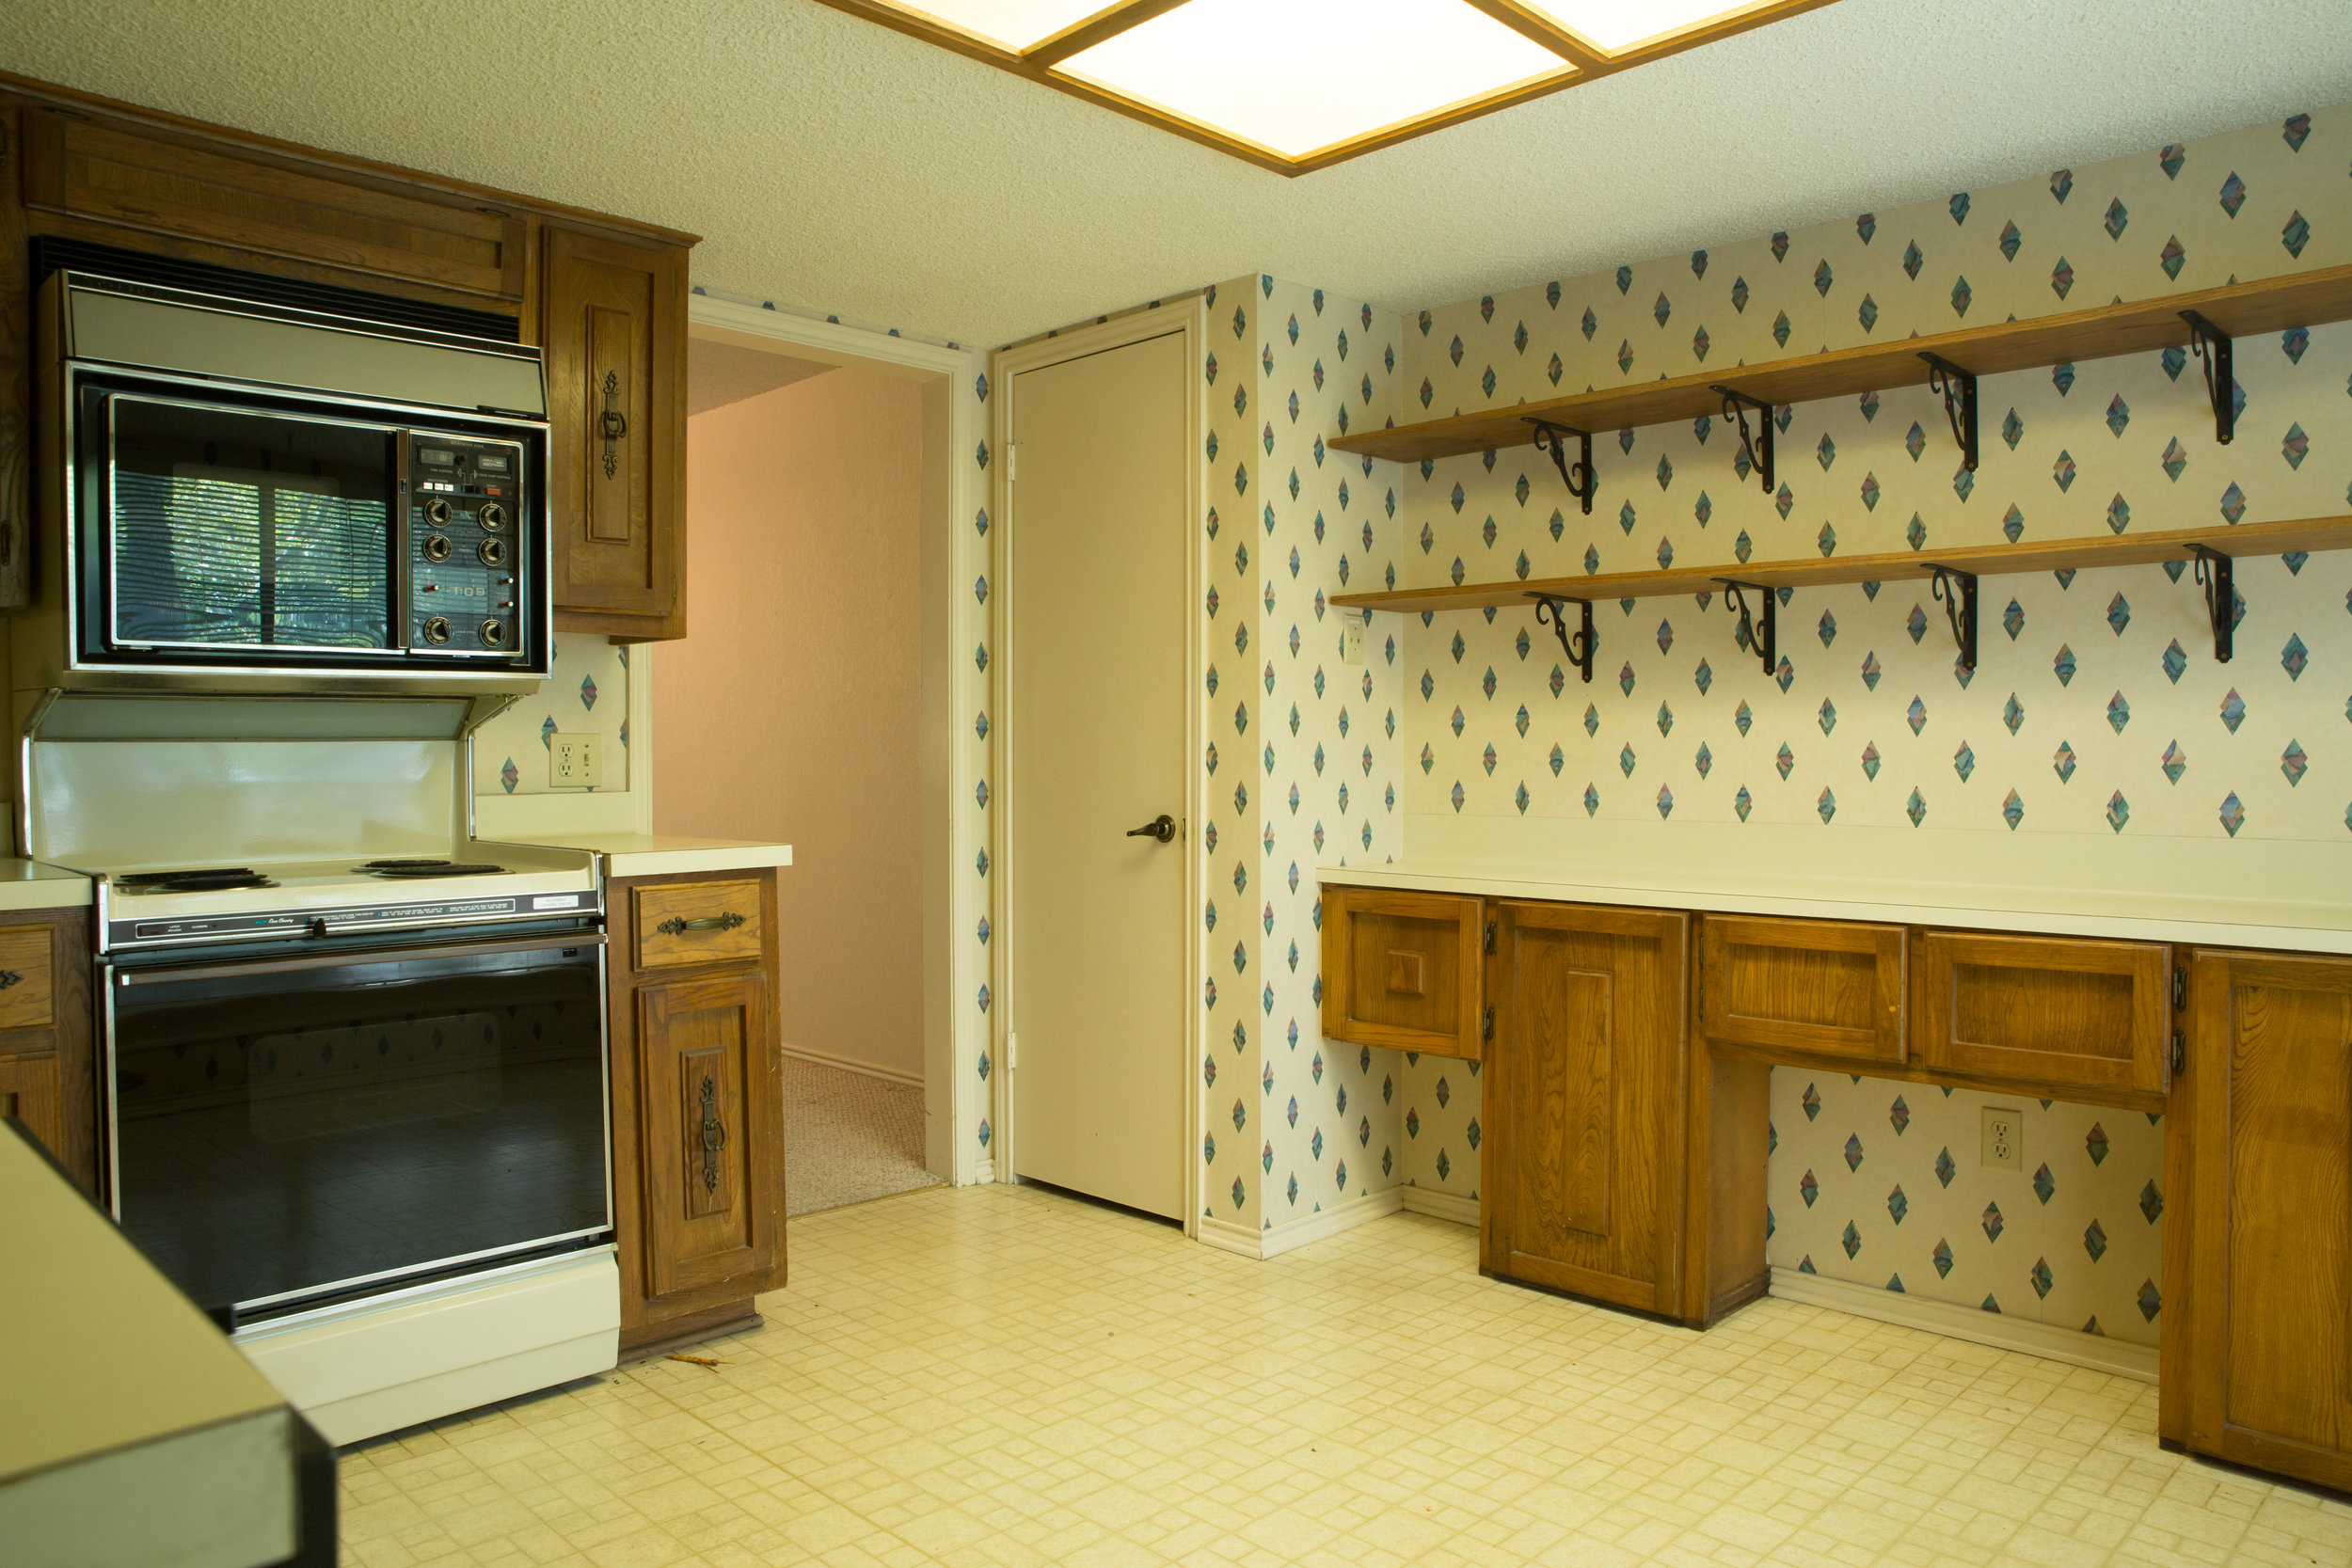 Before and after condominium kitchen remodel